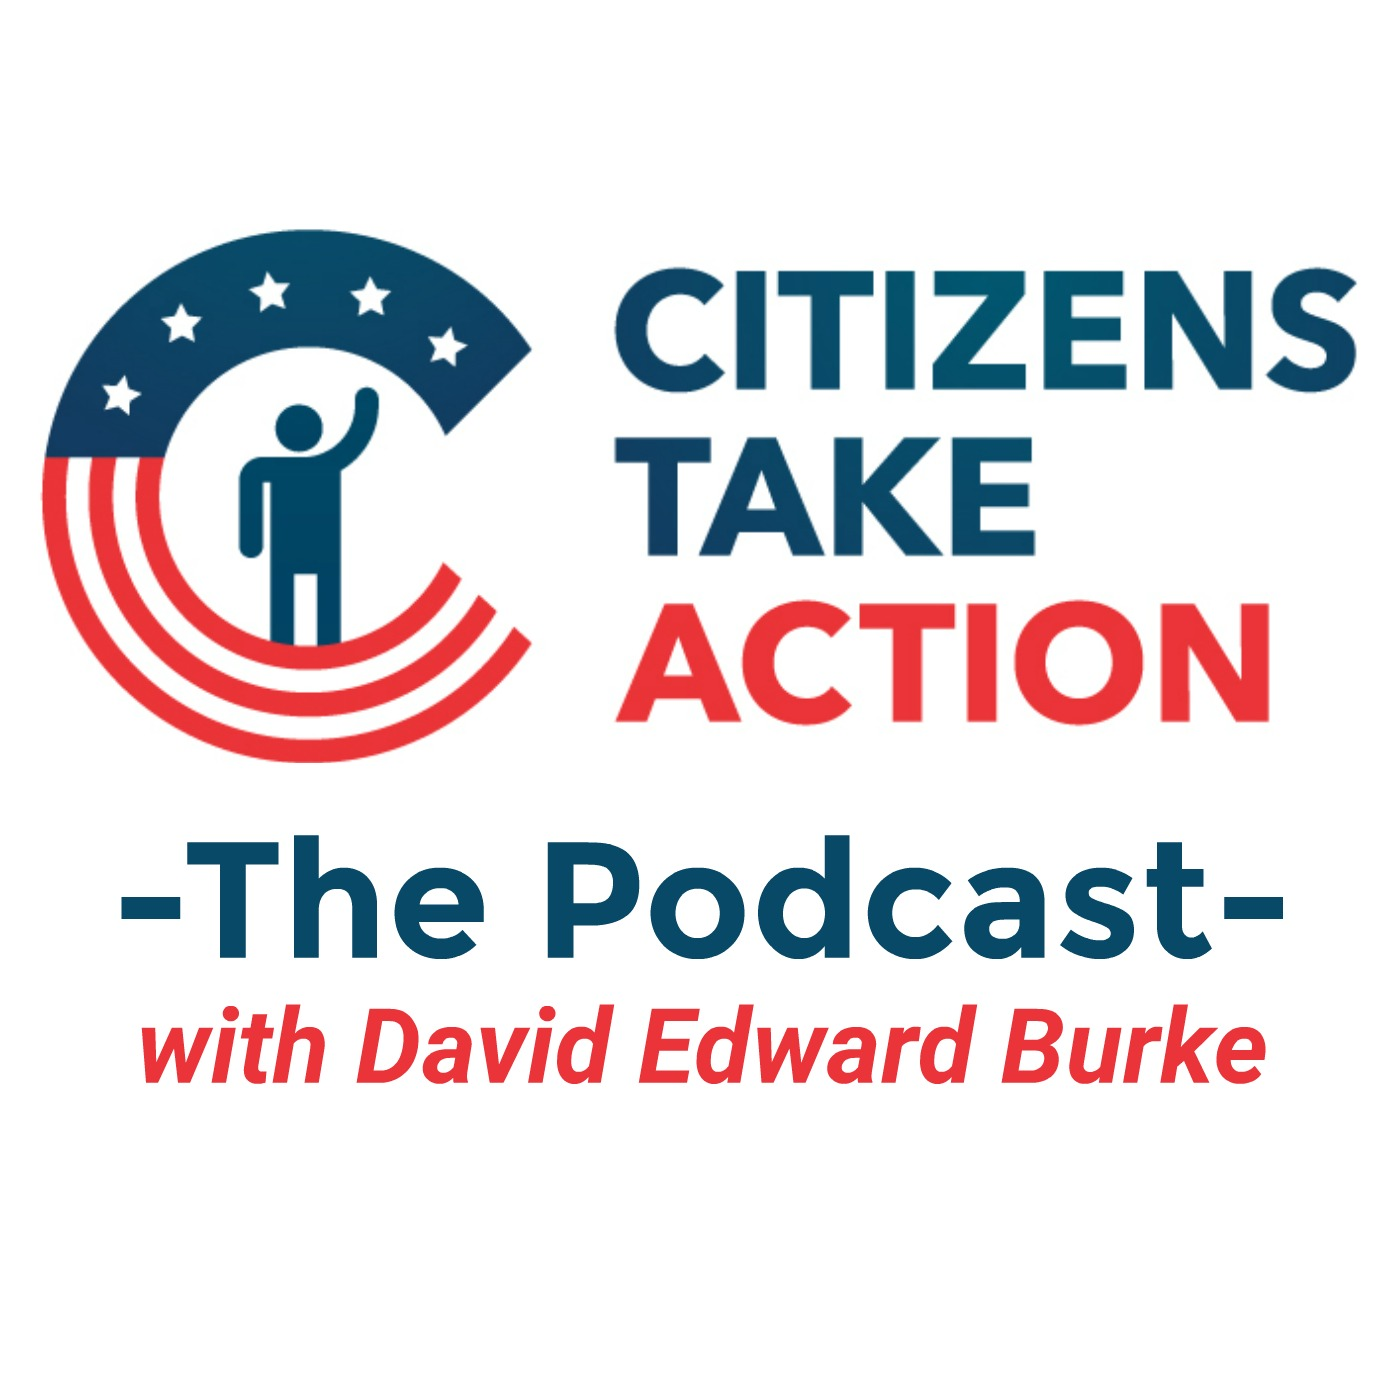 Citizens Take Action Podcast